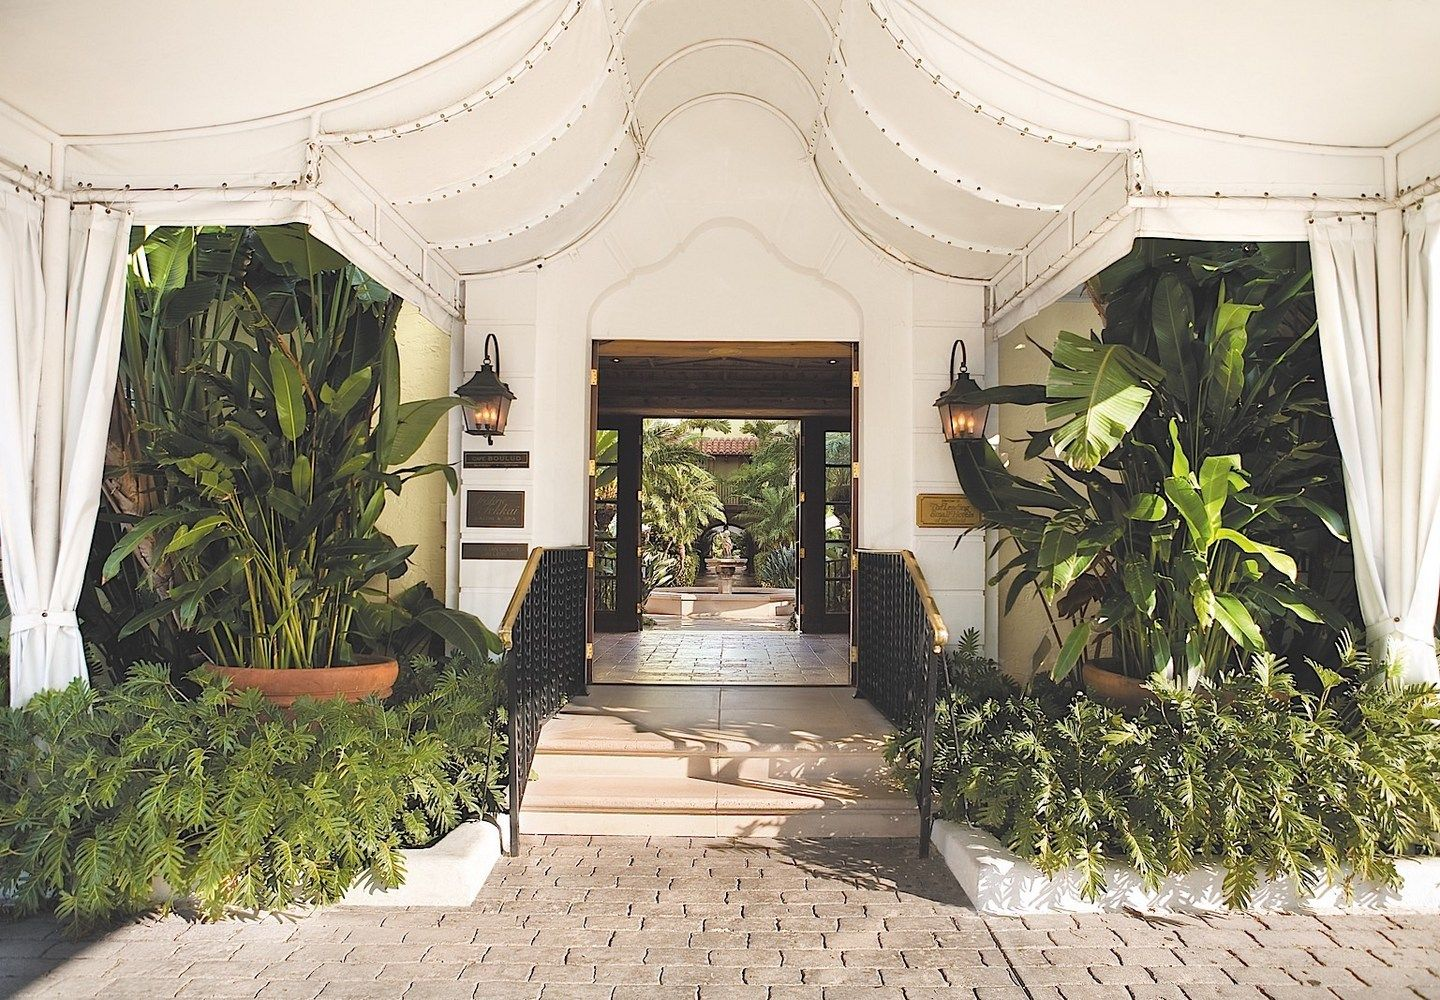 Entrance at The Brazilian Court Palm Beach Canopy